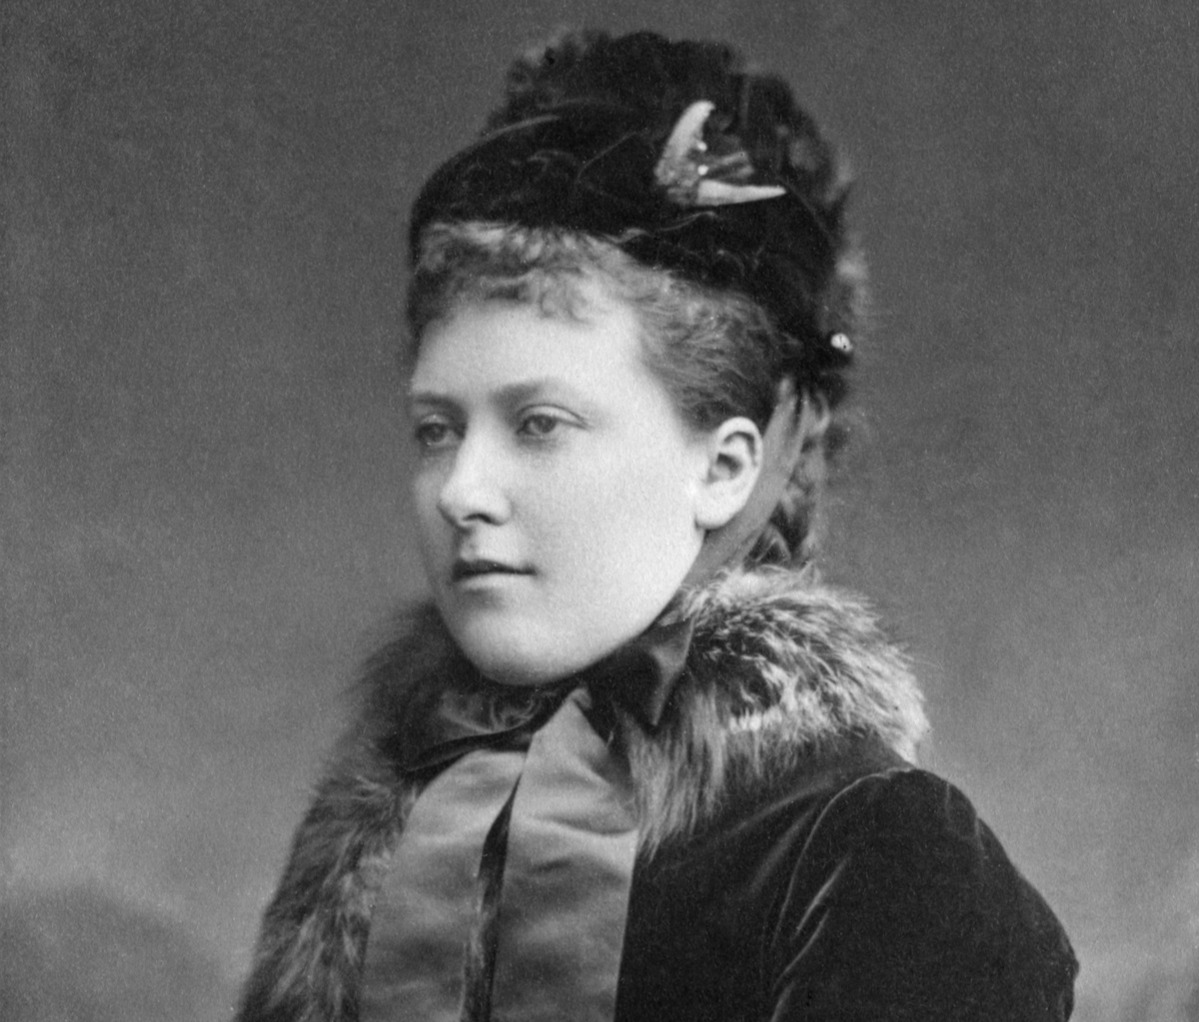 Princess Helena of the United Kingdom